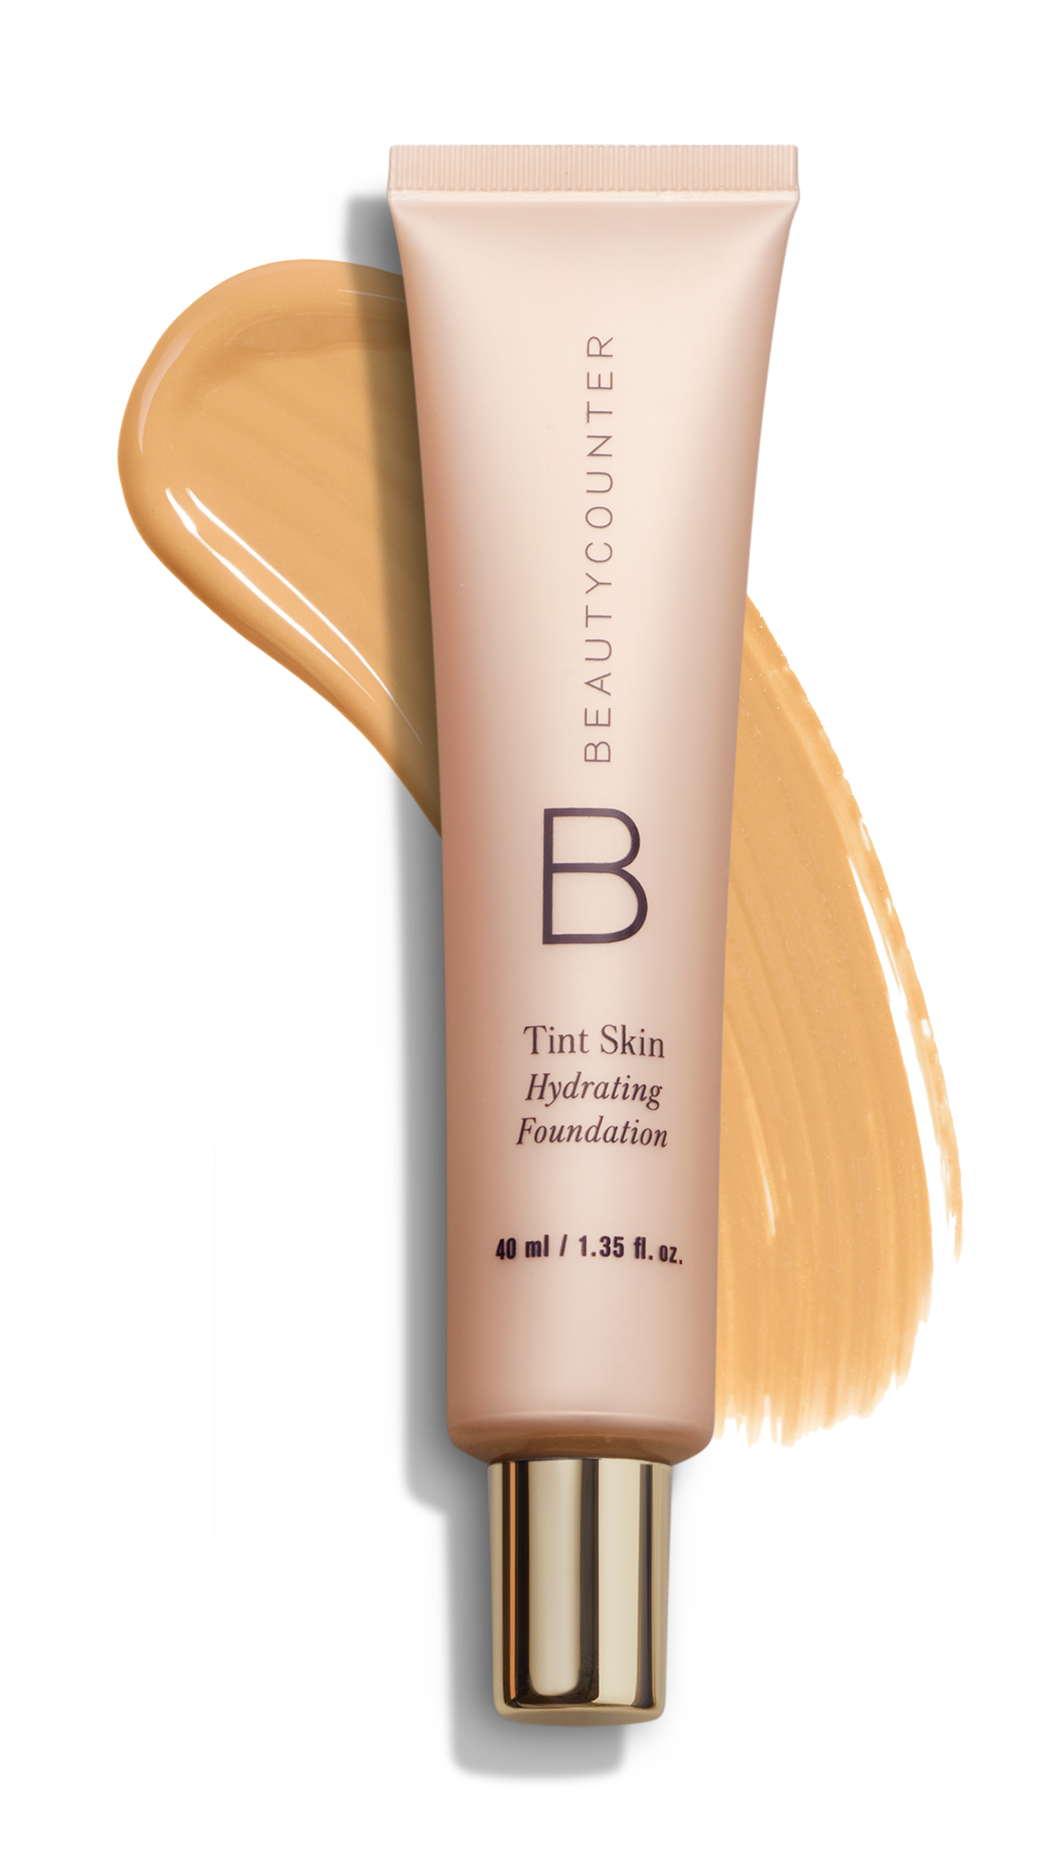 Tint Skin Hydrating Liquid Foundation in Sand